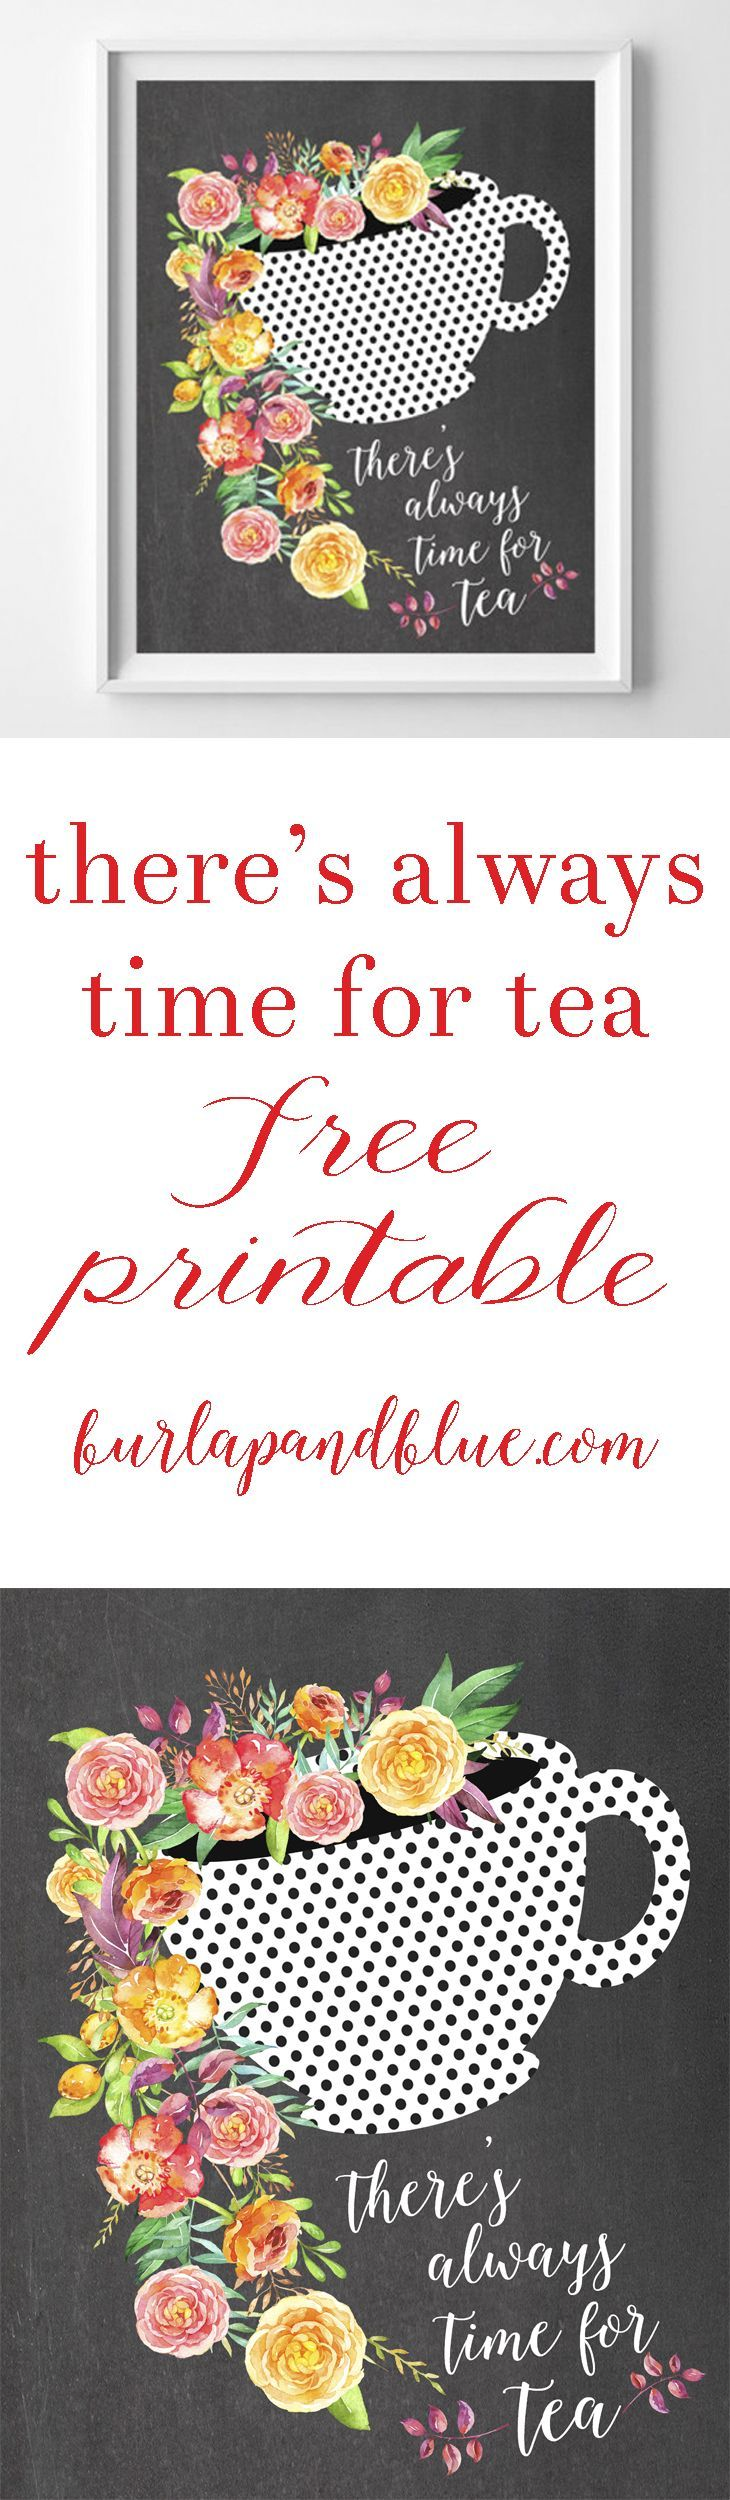 "Love tea? Know someone who does? This ""there's always time for tea"" free printable is perfect as a gift or kitchen art!"